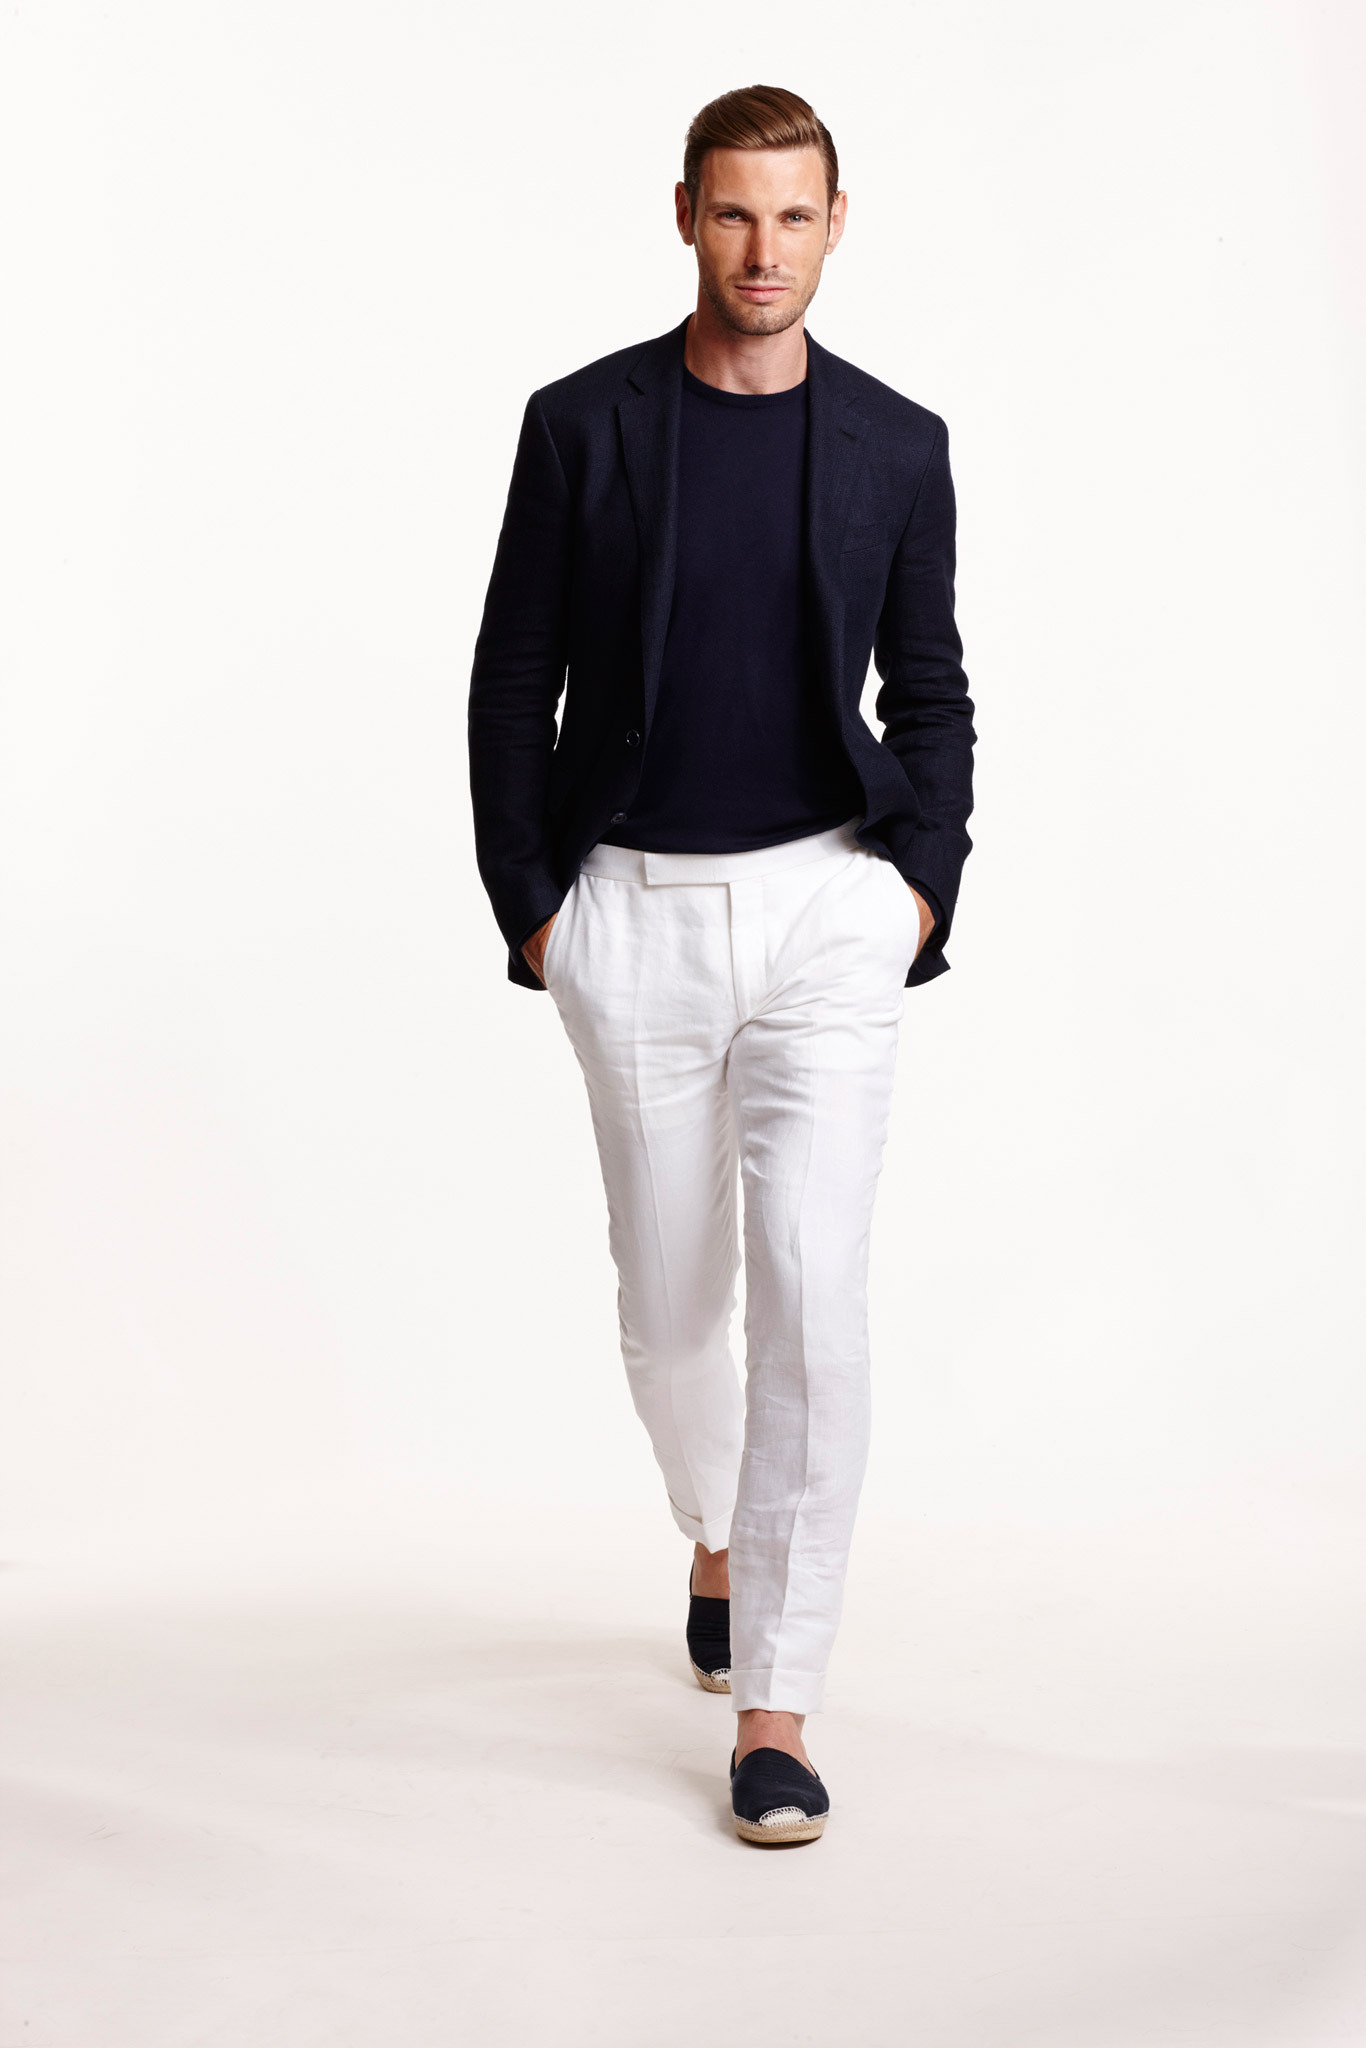 How To Wear a Navy Blazer With White Dress Pants | Men's Fashion